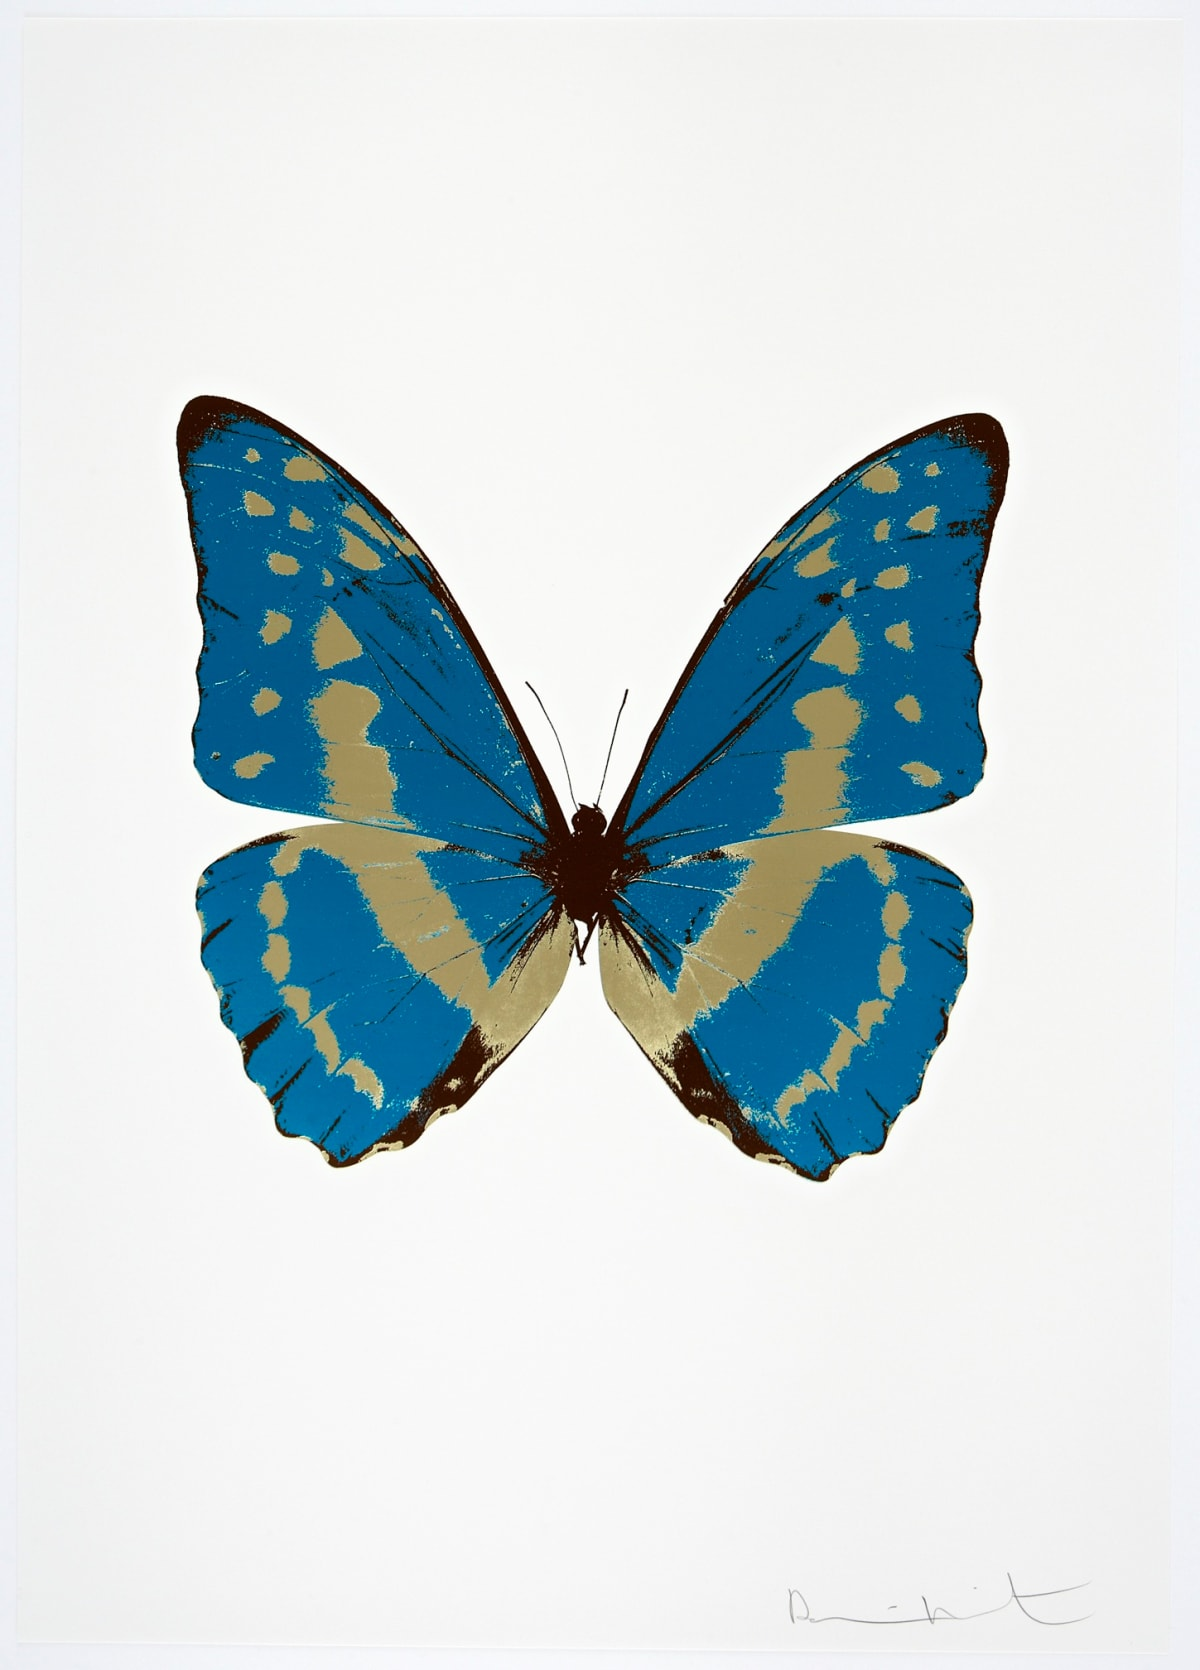 Damien Hirst The Souls III - Turquoise/Cool Gold/Chocolate, 2010 3 colour foil block on 300gsm Arches 88 archival paper. Signed and numbered. Published by Paul Stolper and Other Criteria 72 x 51cm OC7954 / 660-57 Edition of 15